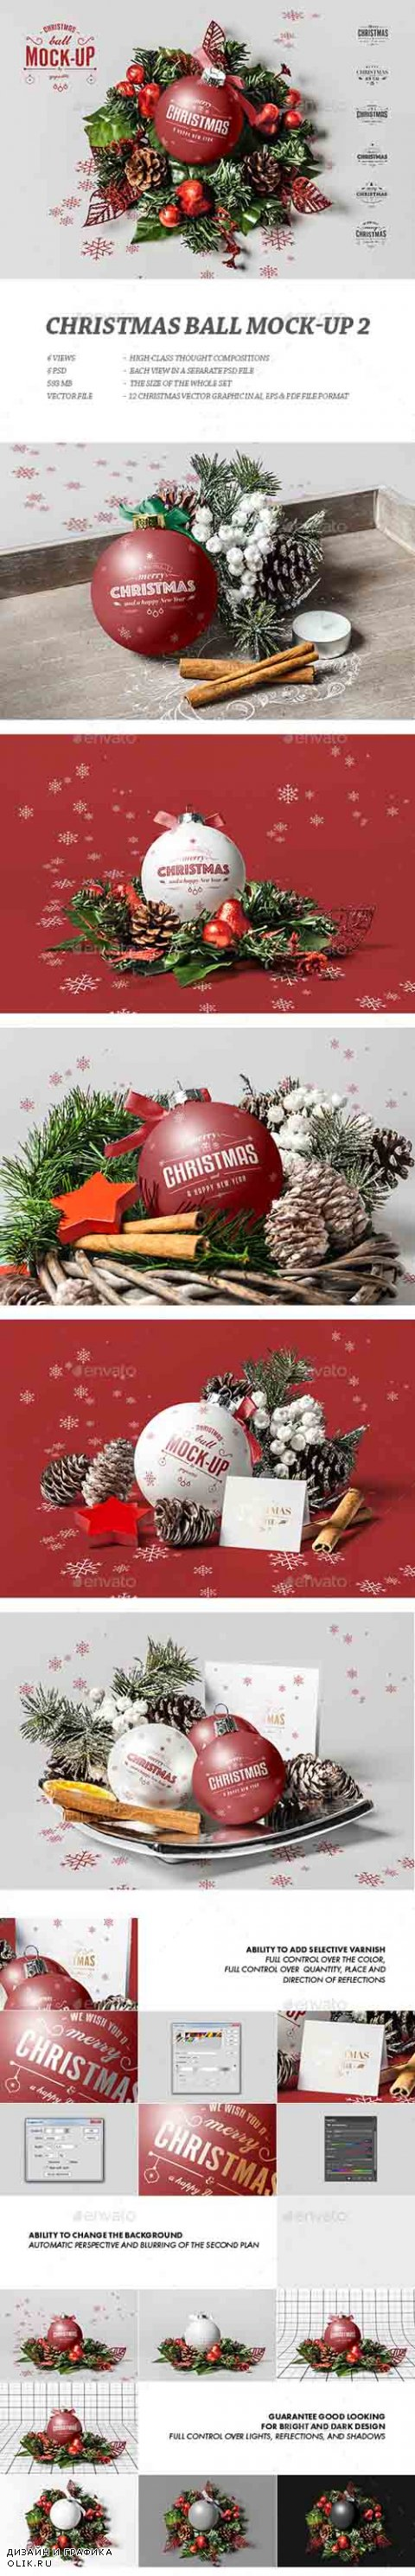 Christmas Ball Mock-up 2 13745128